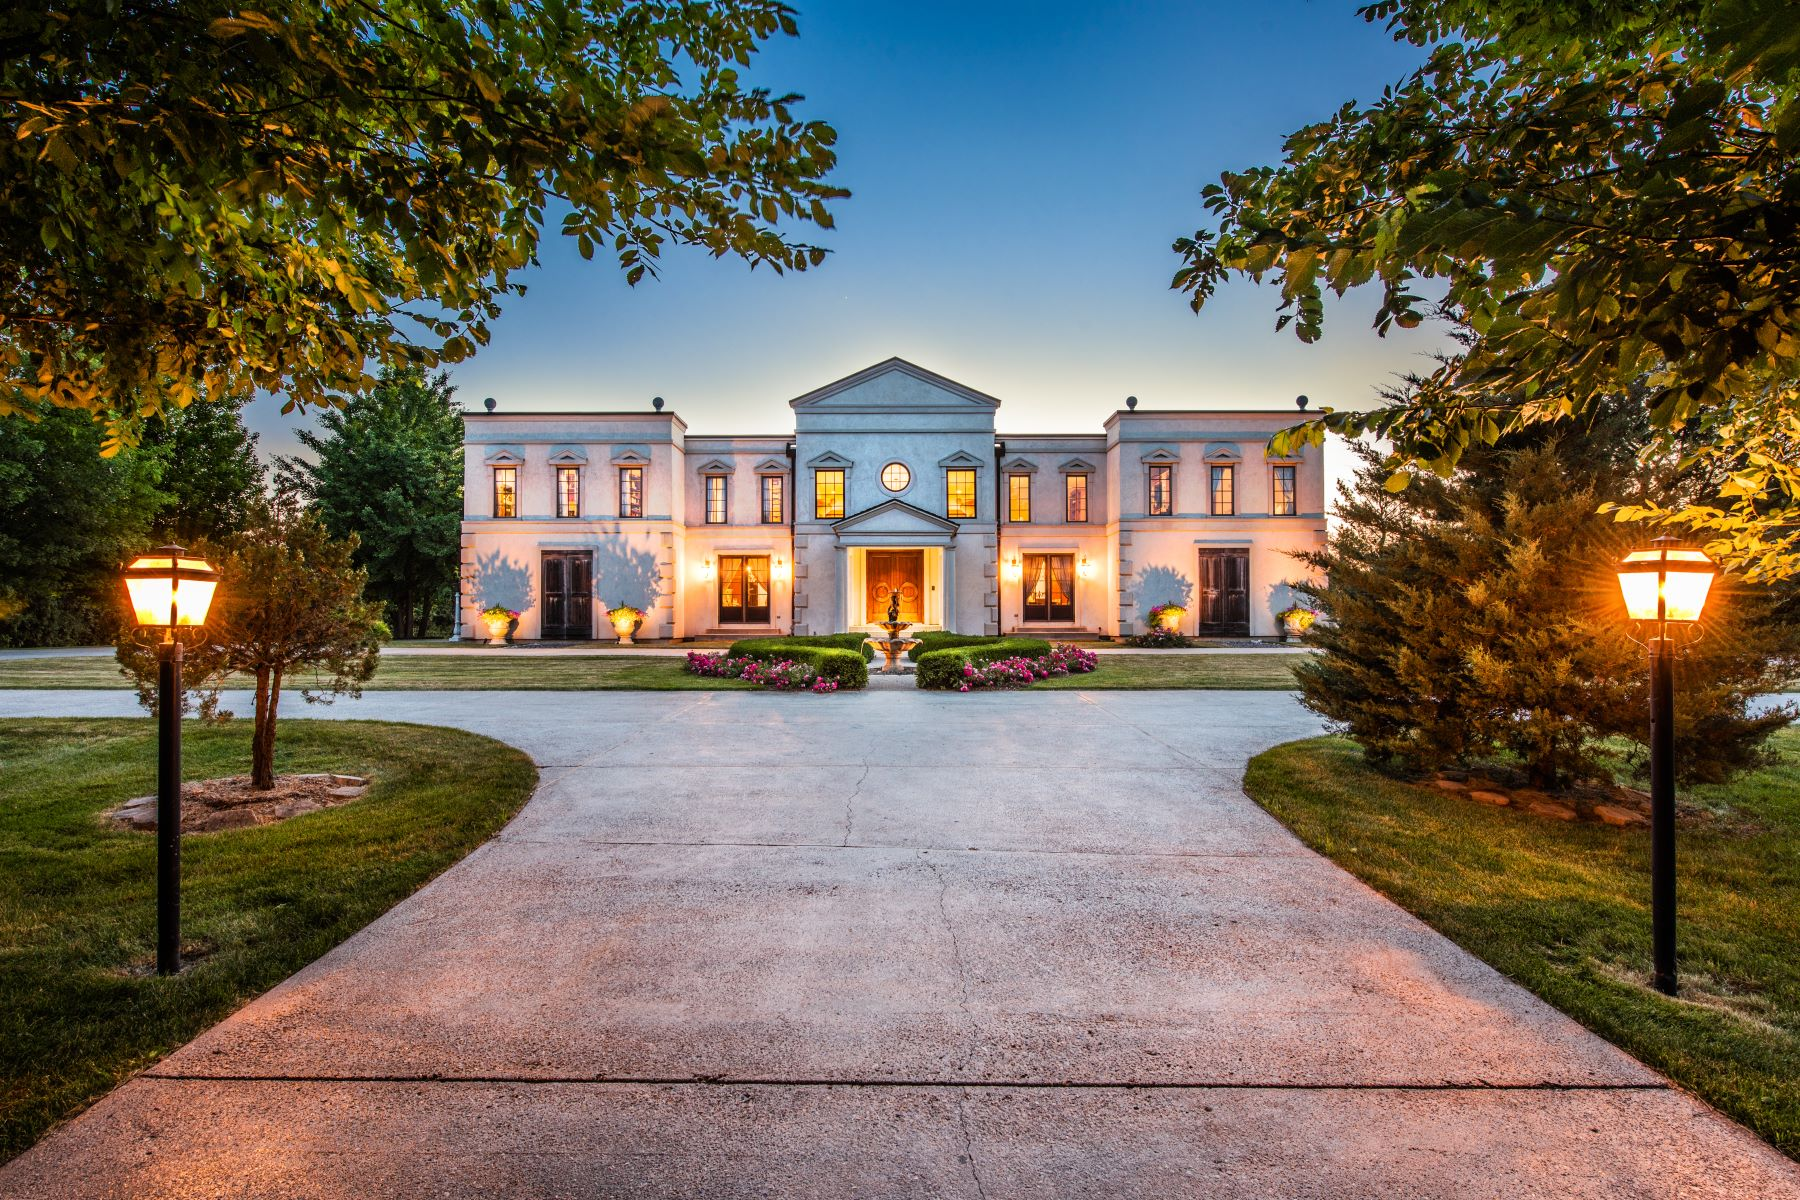 Single Family Home for Sale at Palladian-esque Villa in Illinois 21732 N Old Barrington Road North Barrington, Illinois 60010 United States